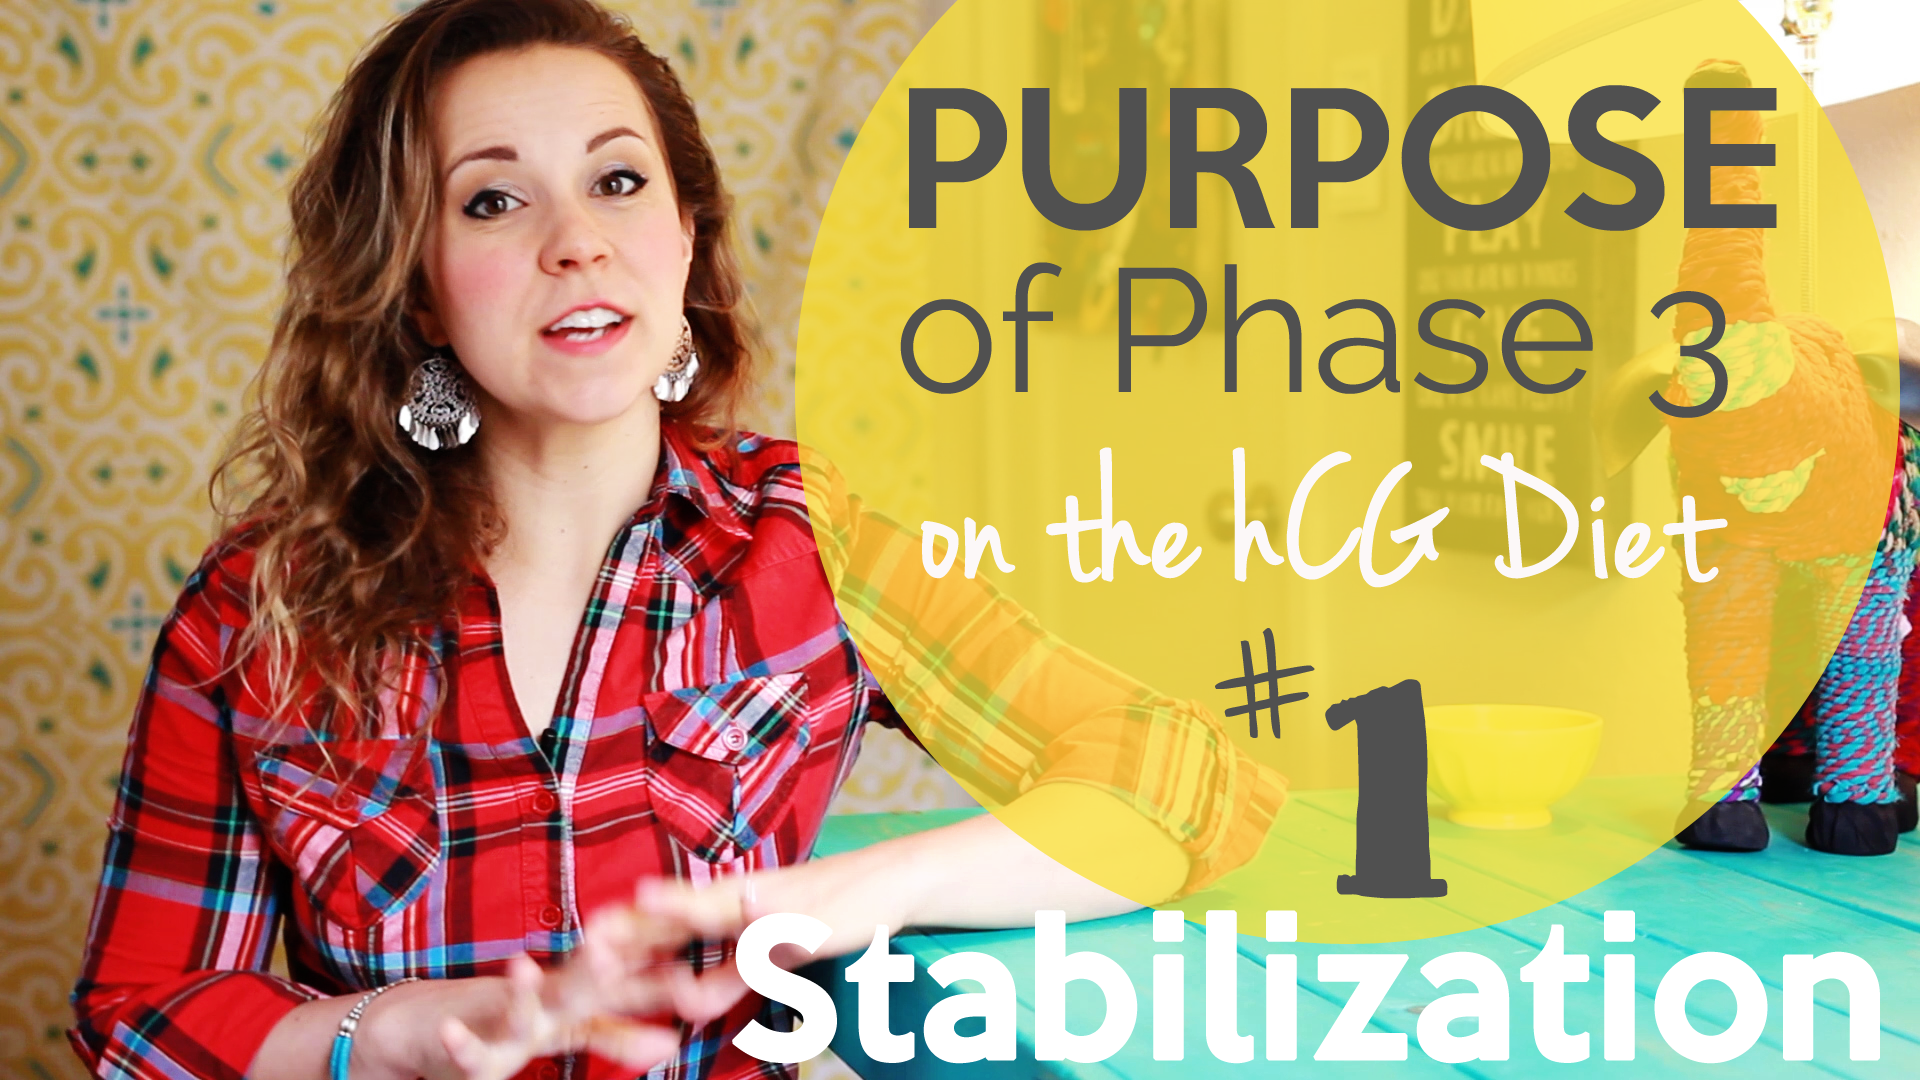 Phase 3 of the hCG Diet- the PURPOSE of P3 - #1 - Stabilization- hcgchica.com